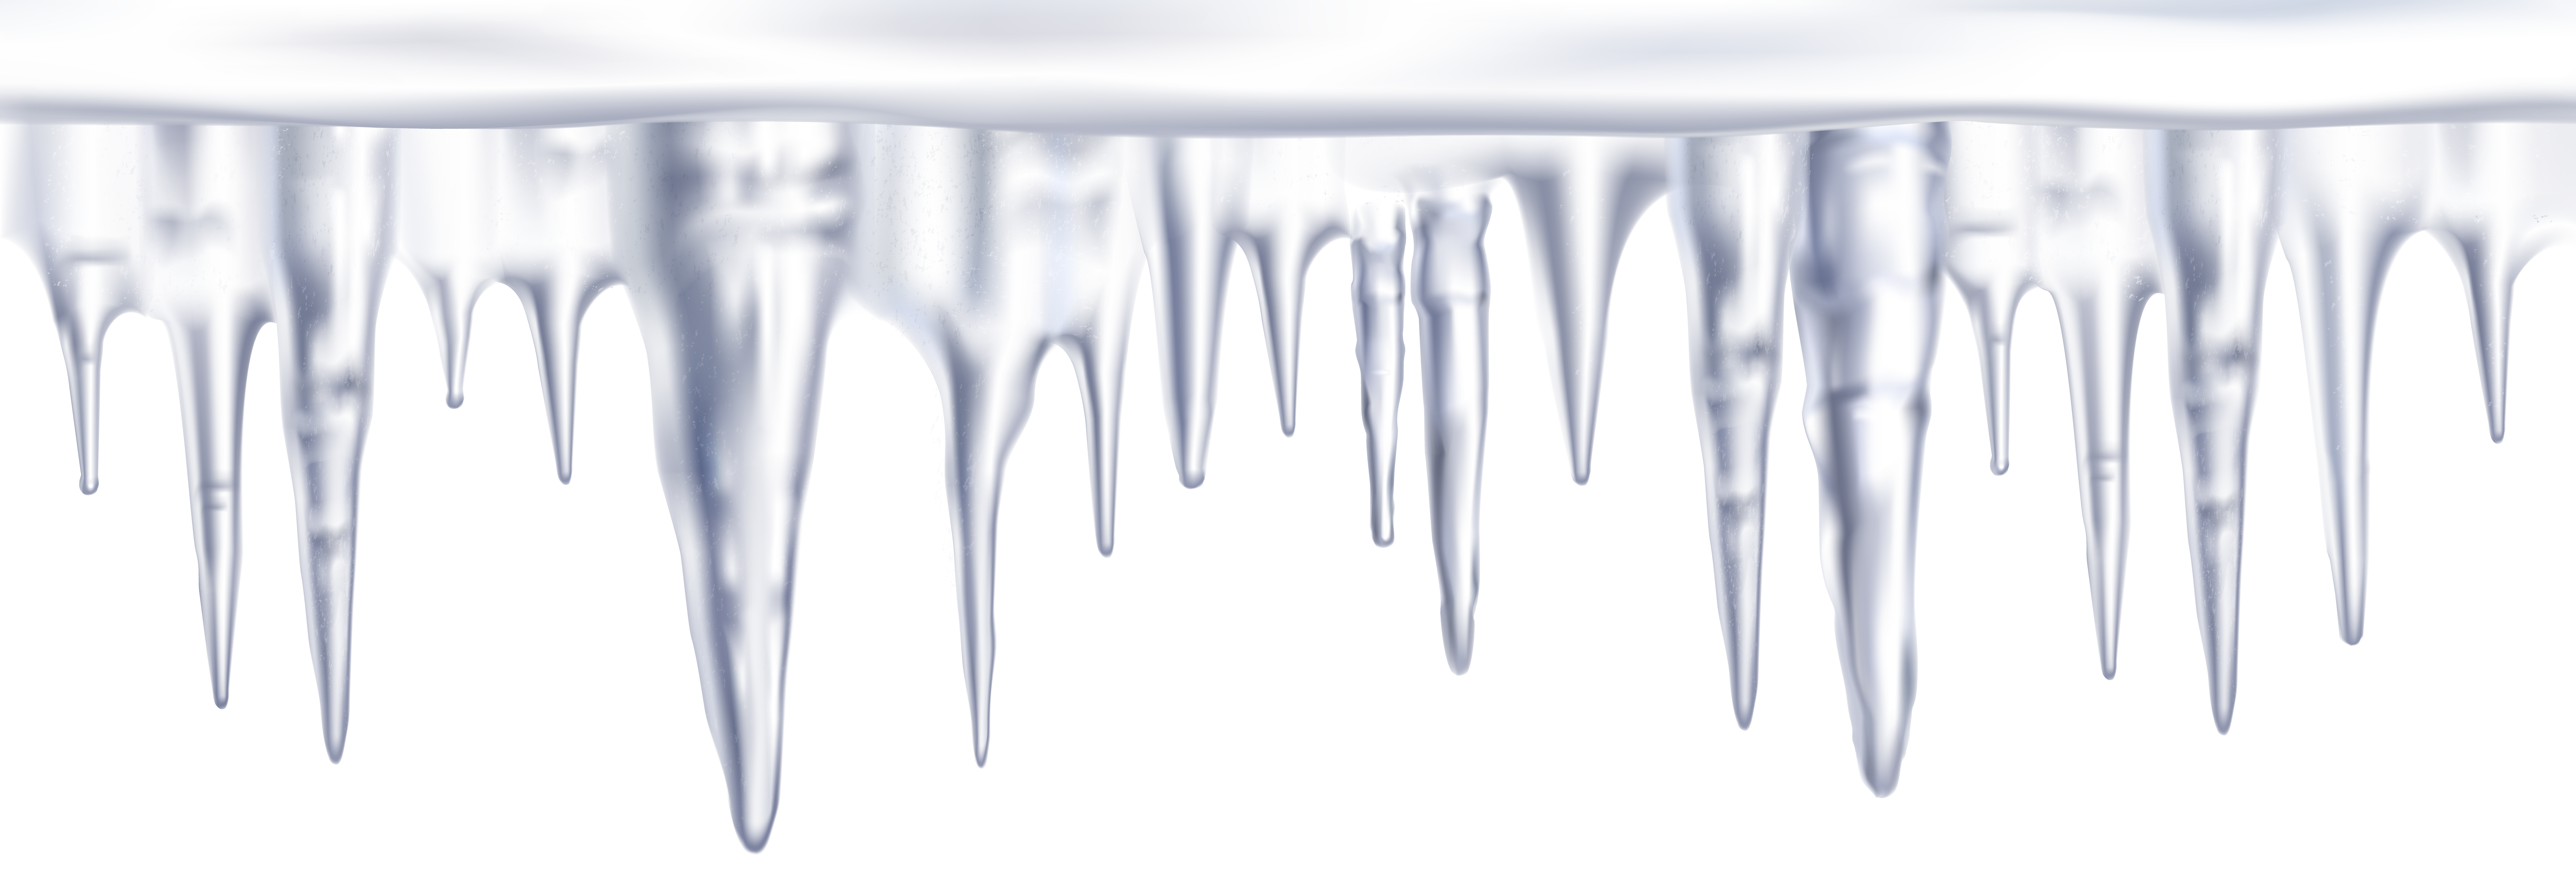 Free Icicles Cliparts Border, Download Free Clip Art, Free Clip Art.